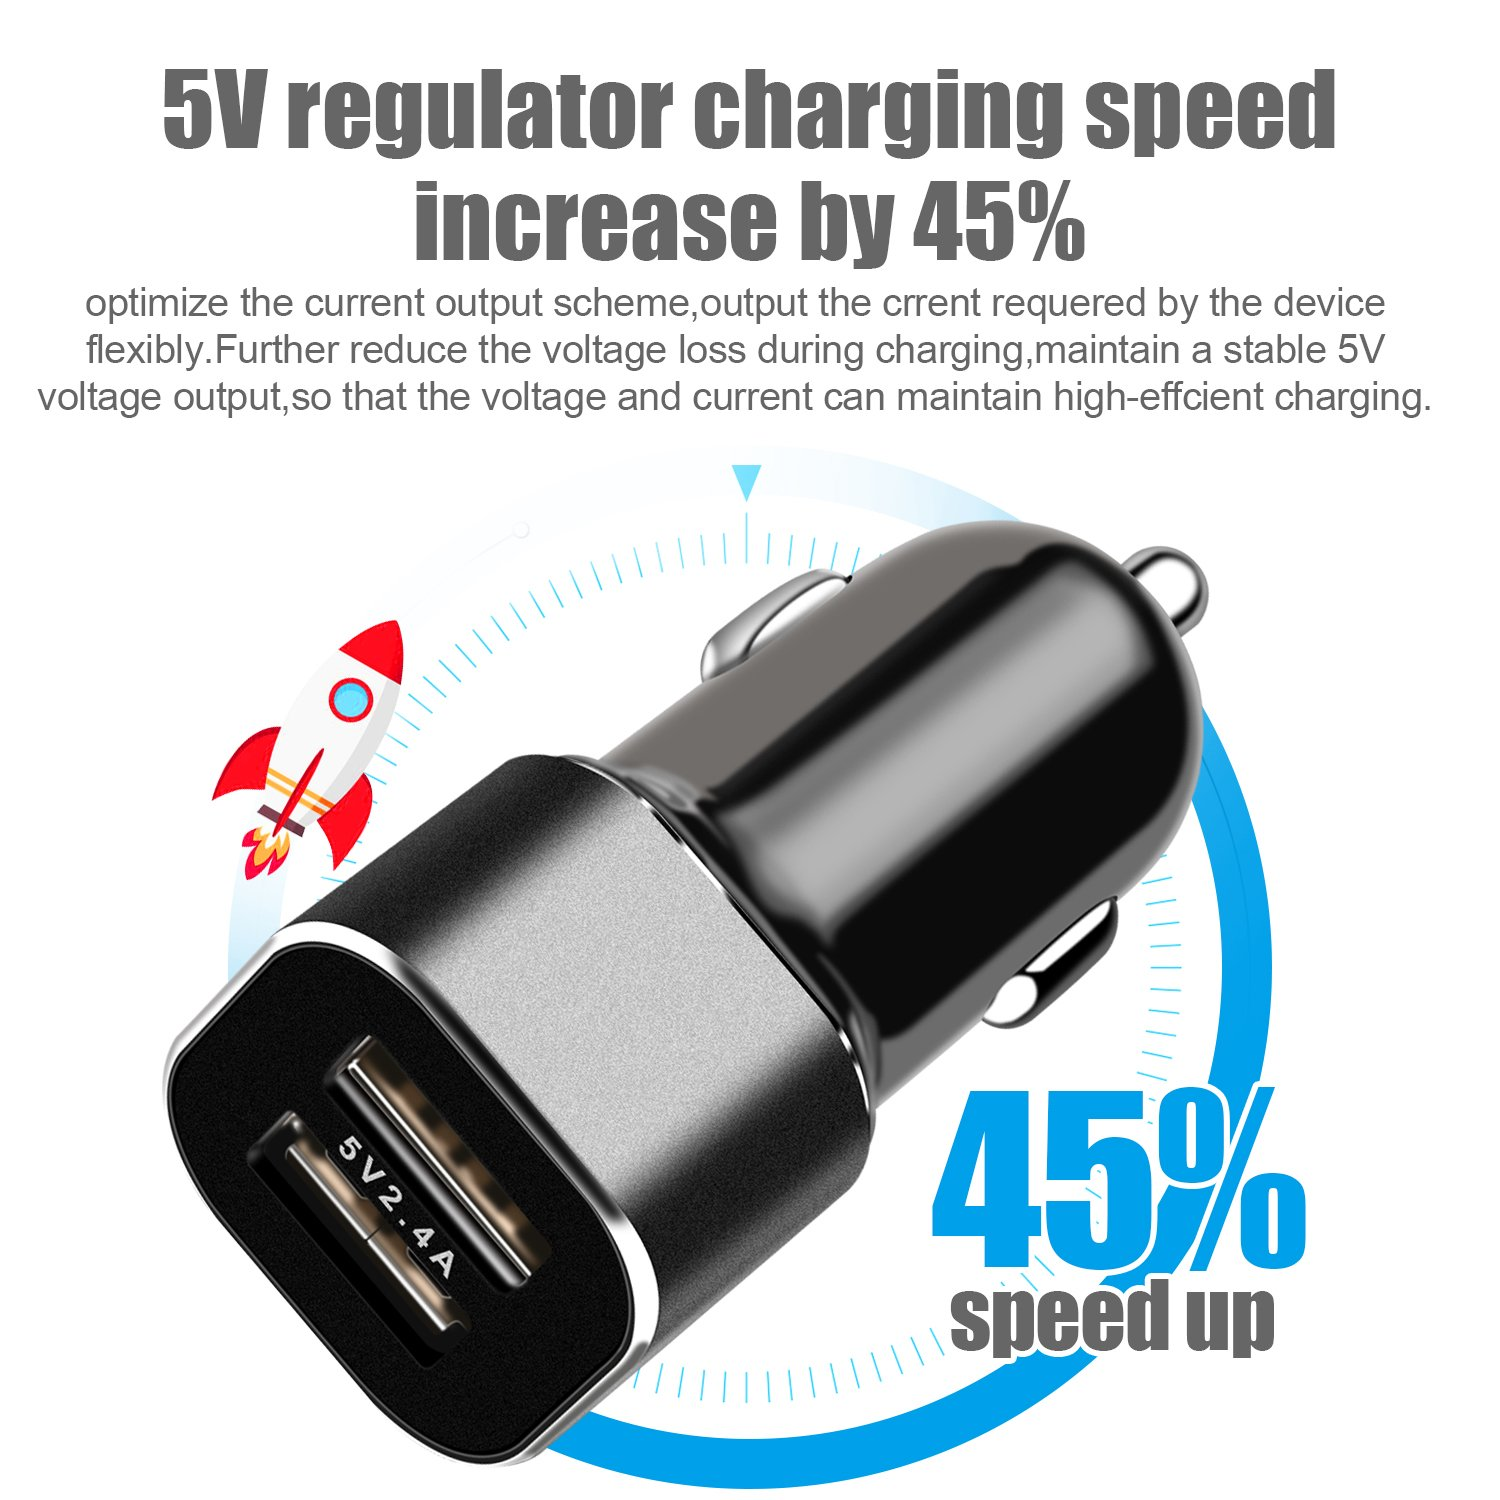 Black Red Ulimag Phone Car Charger 24W//4.8A Rapid Dual Port USB Car Charger Adapter with 3FT USB Cable Charging Cord for Phone X 8 7 Plus 6S 6 SE 5S 5